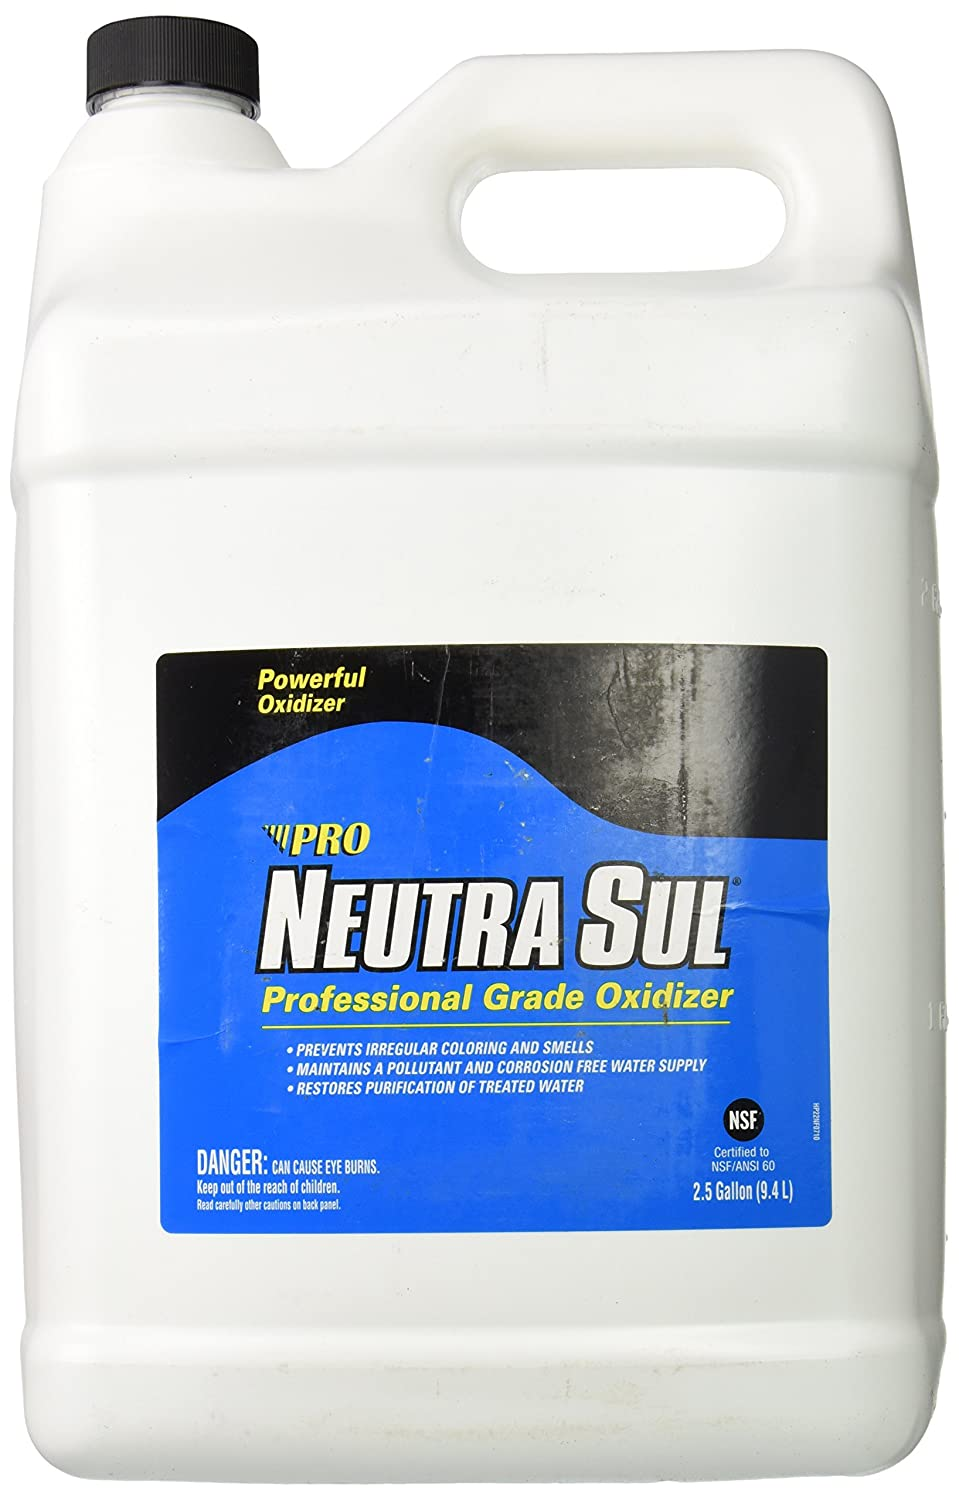 2.5 gal Pro Products Neutra Sul Powerful Professional Grade Oxidant Oxidizer HP22N Protect Against Irregular coloring and rotten egg smell in treated water